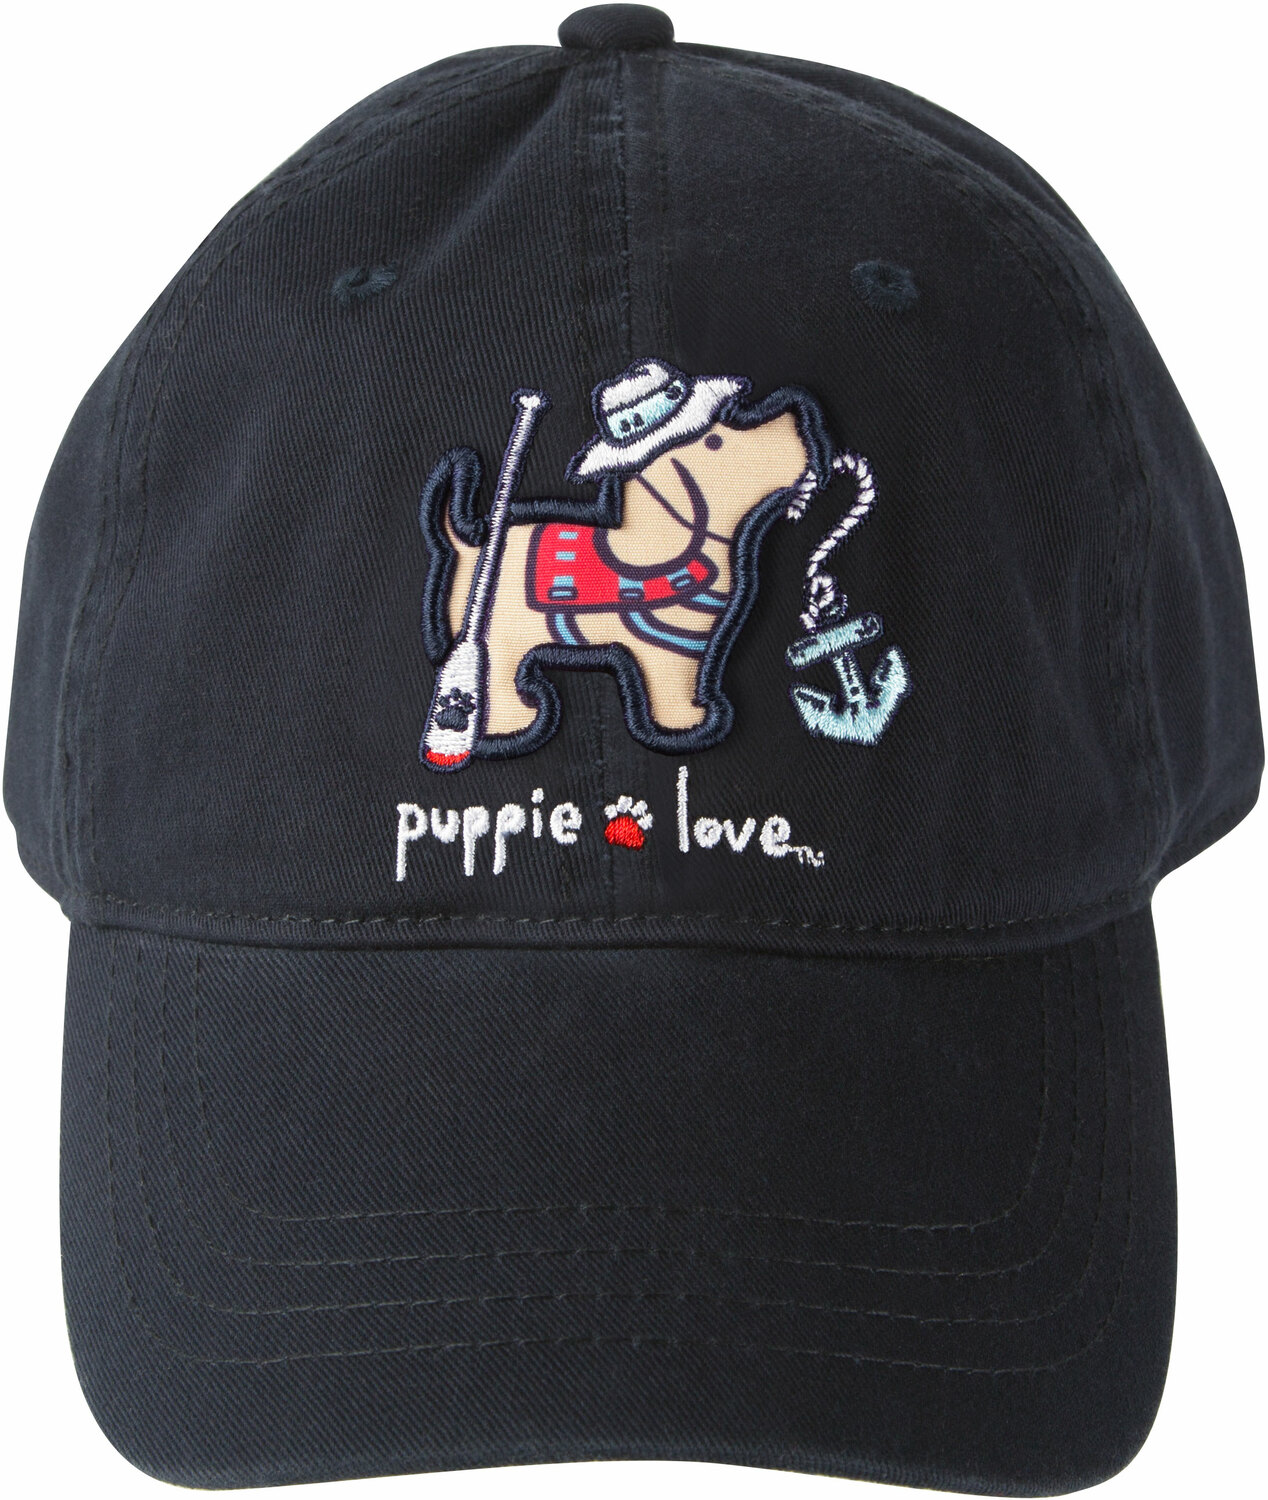 Lake by Puppie Love - Lake - Navy Adjustable Hat